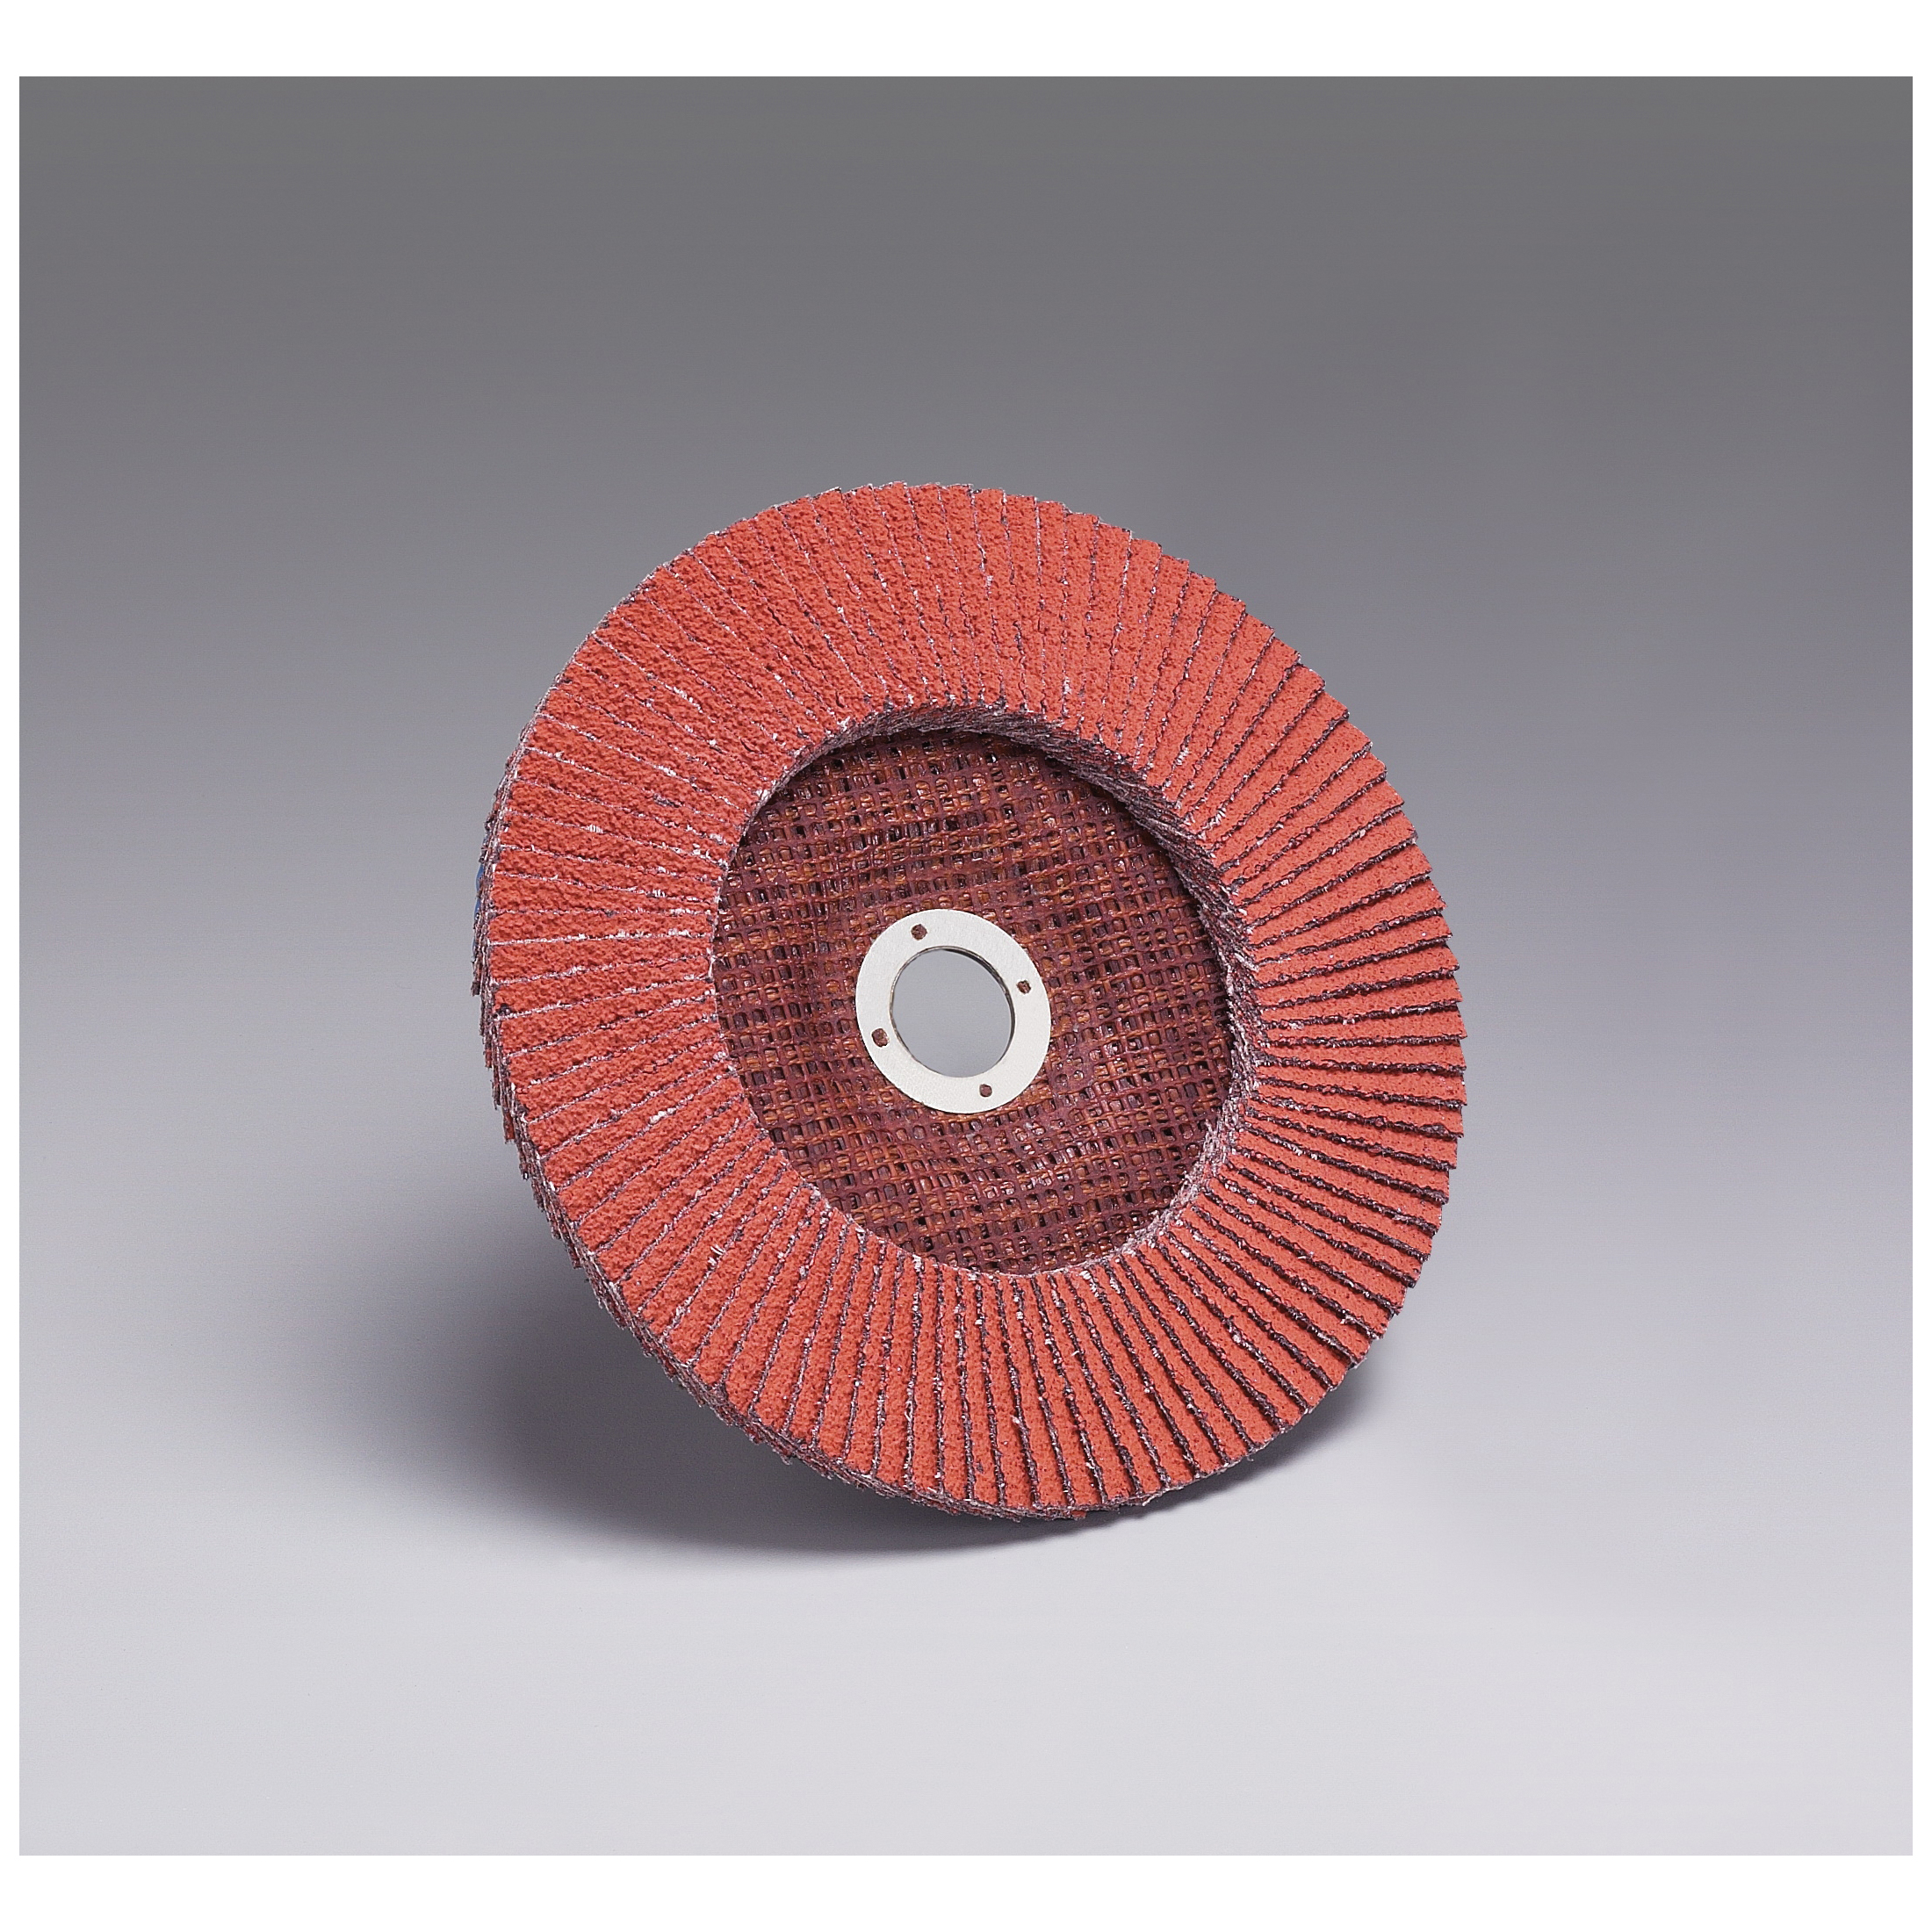 3M™ 051111-61190 947D Close Close Coated Flap Disc, 4-1/2 in Dia Disc, 7/8 in Center Hole, 120 Grit, Fine Grade, Ceramic Abrasive, Type 27 Disc